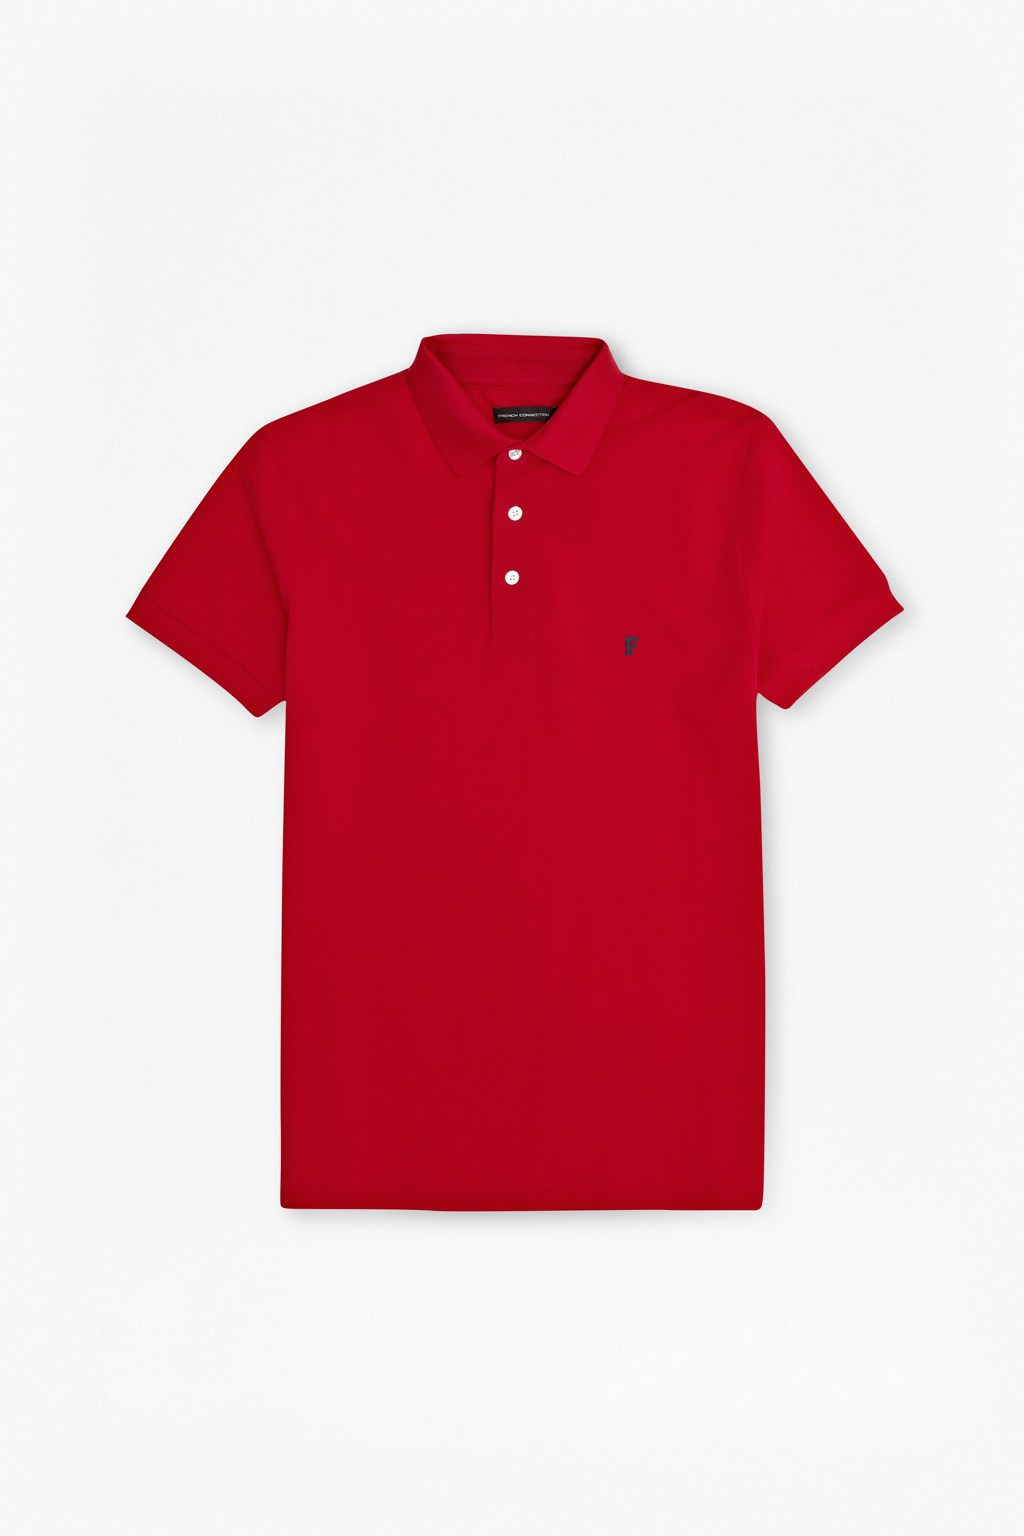 Shop for boys solid polo shirt online at Target. Free shipping on purchases over $35 and save 5% every day with your Target REDcard.